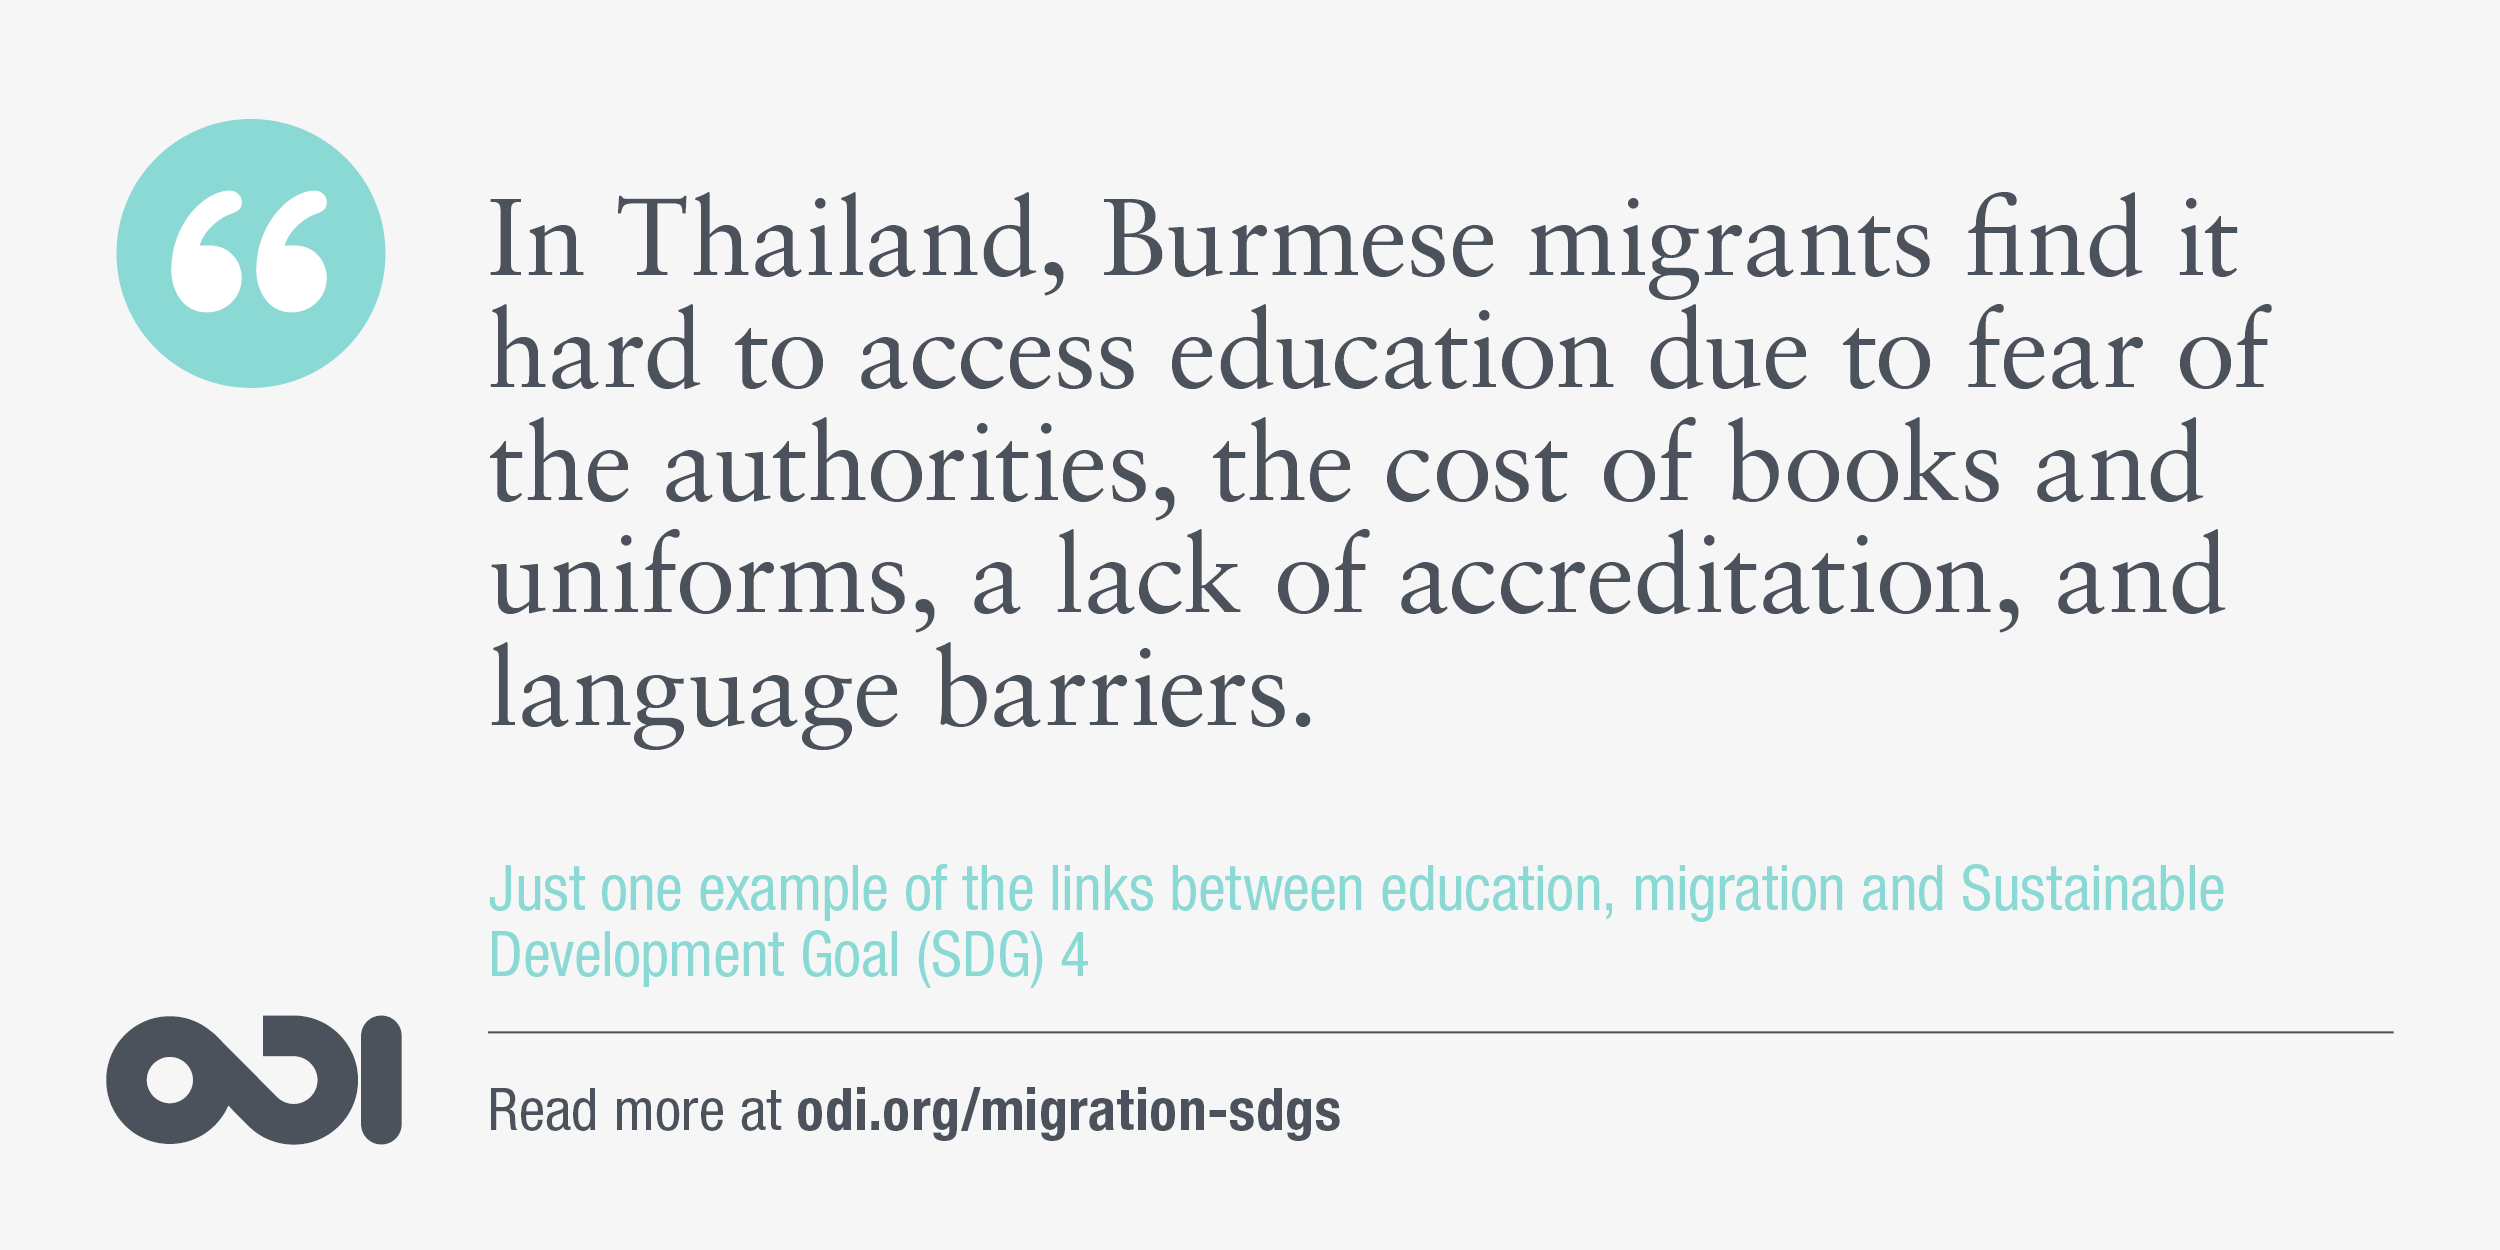 The links between education, migration and SDG 4.